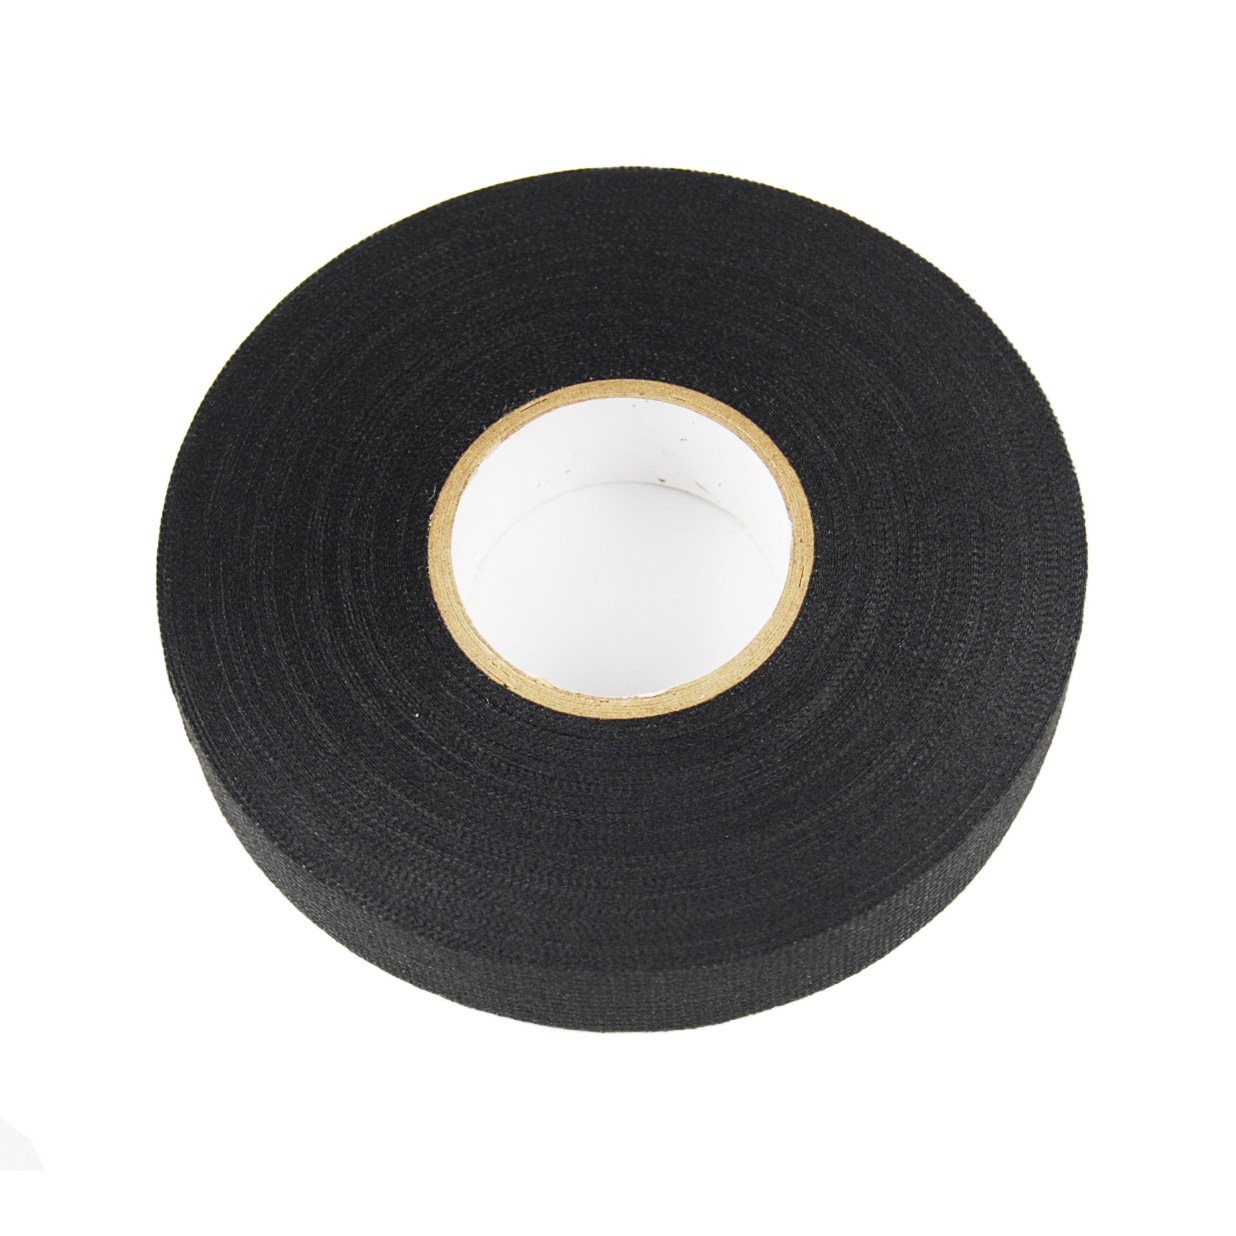 71j3xOvCF3L._SL1236_ amazon com novosonics 51618 automotive cloth tape, wire loom wire loom harness tape at bakdesigns.co